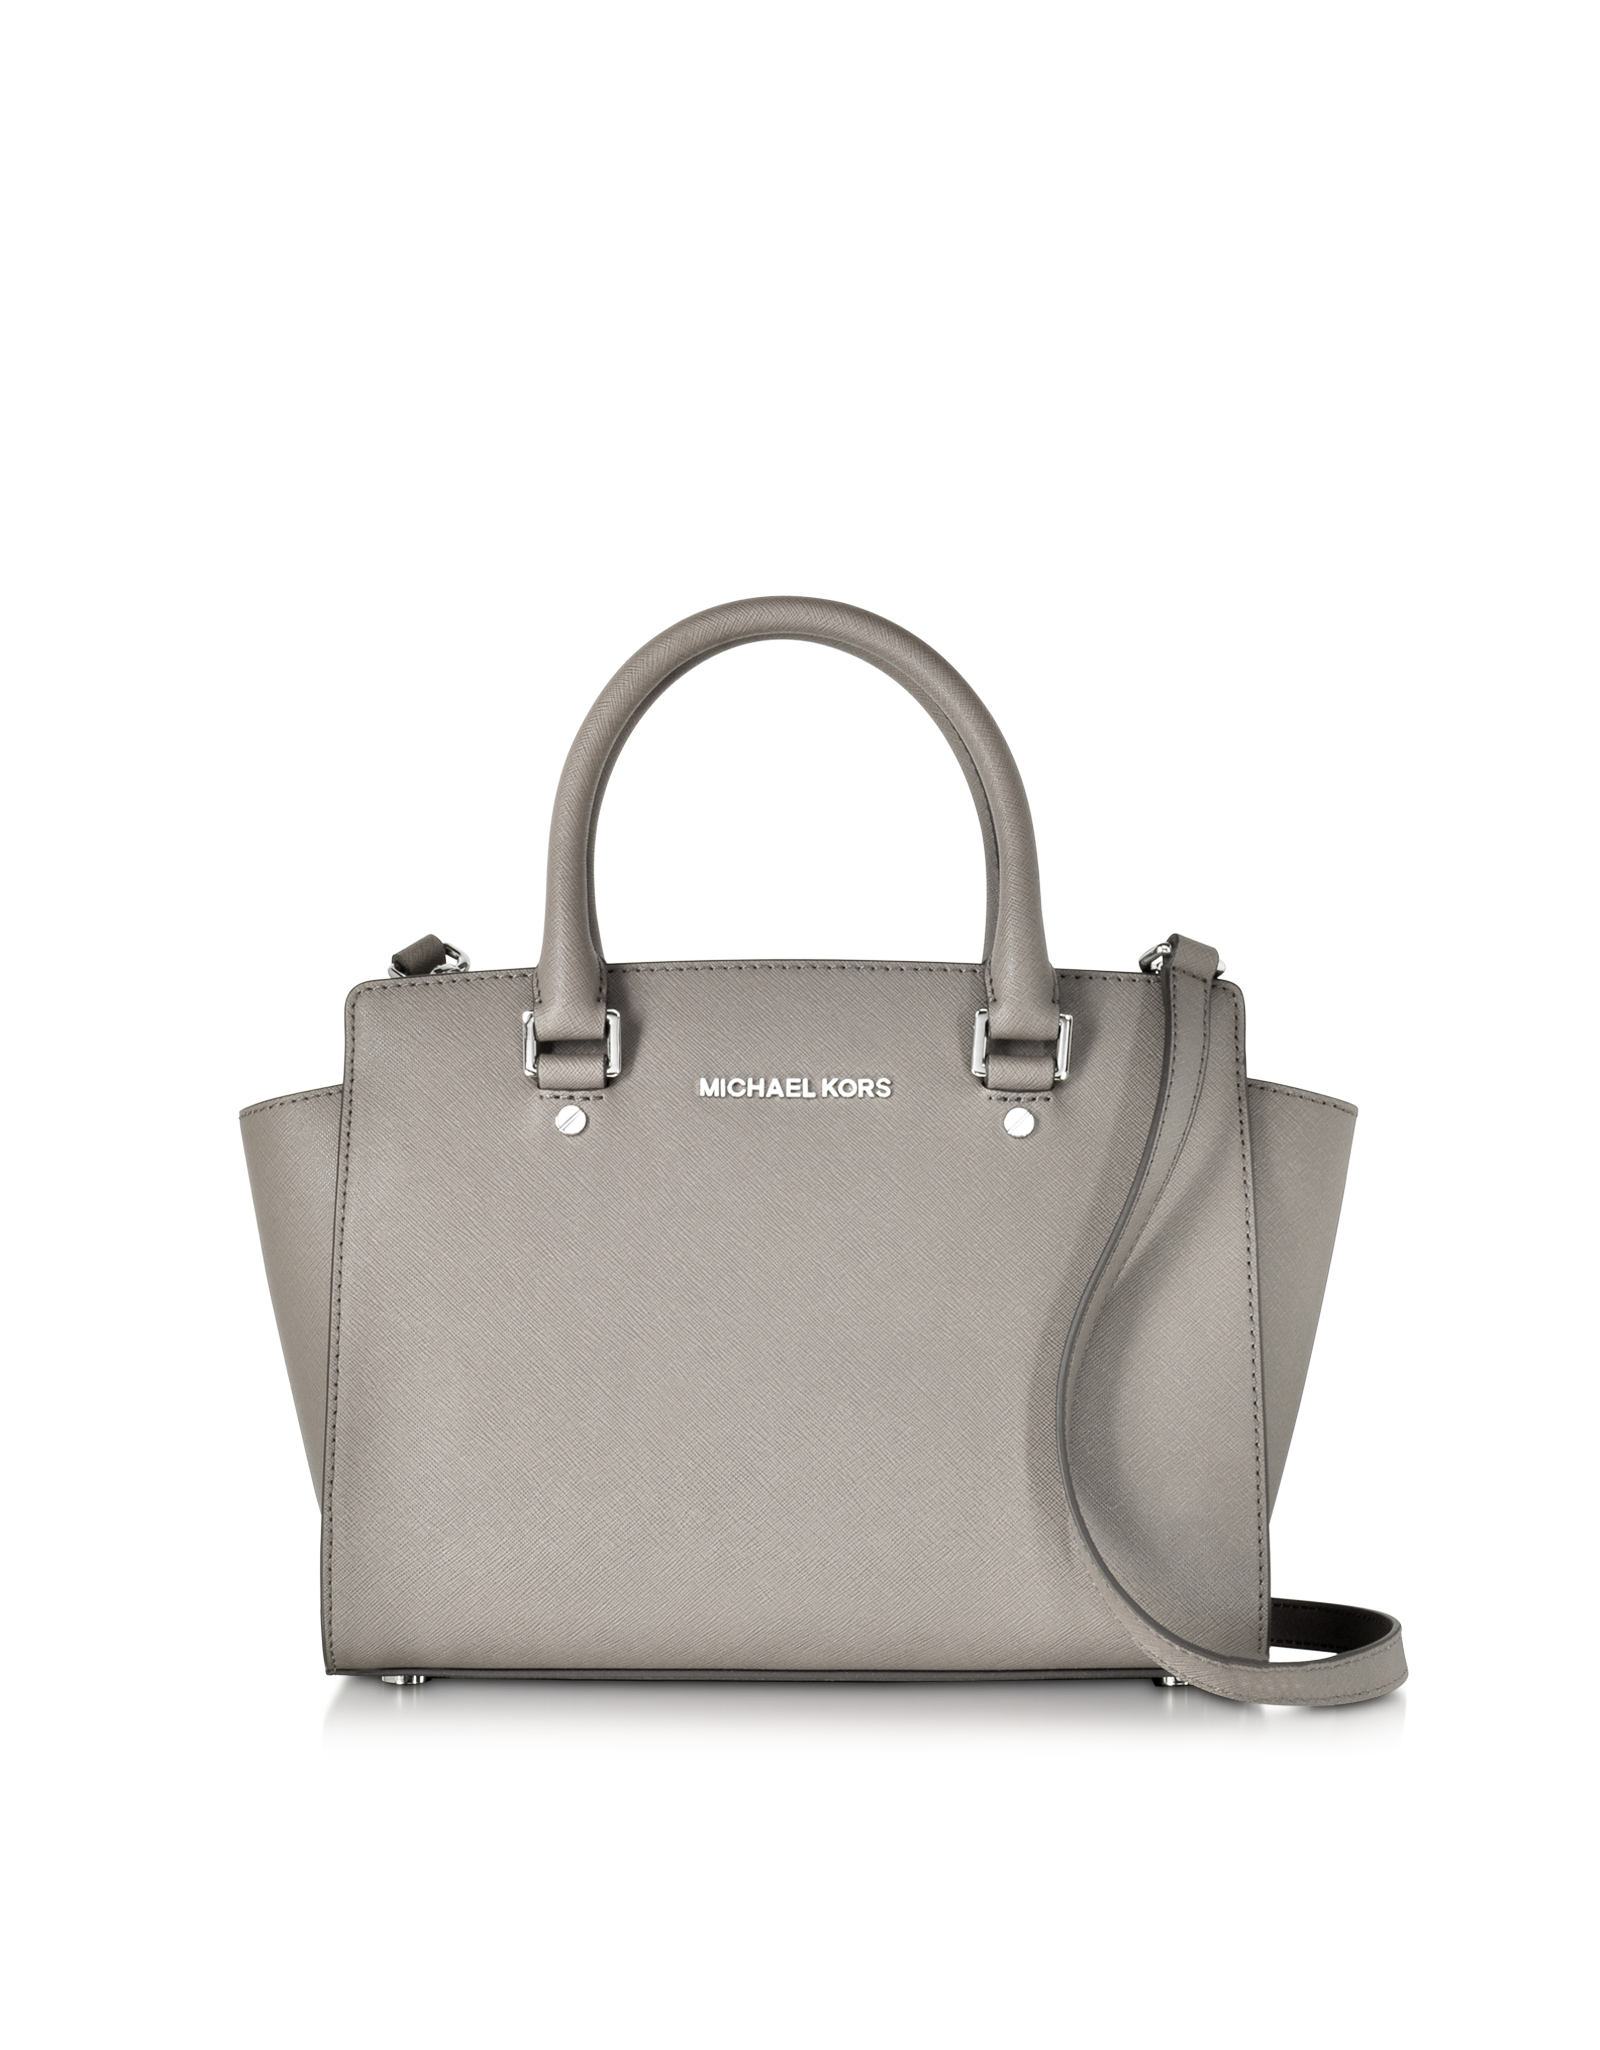 michael kors pearl gray saffiano leather selma medium t zip satchel in white lyst. Black Bedroom Furniture Sets. Home Design Ideas